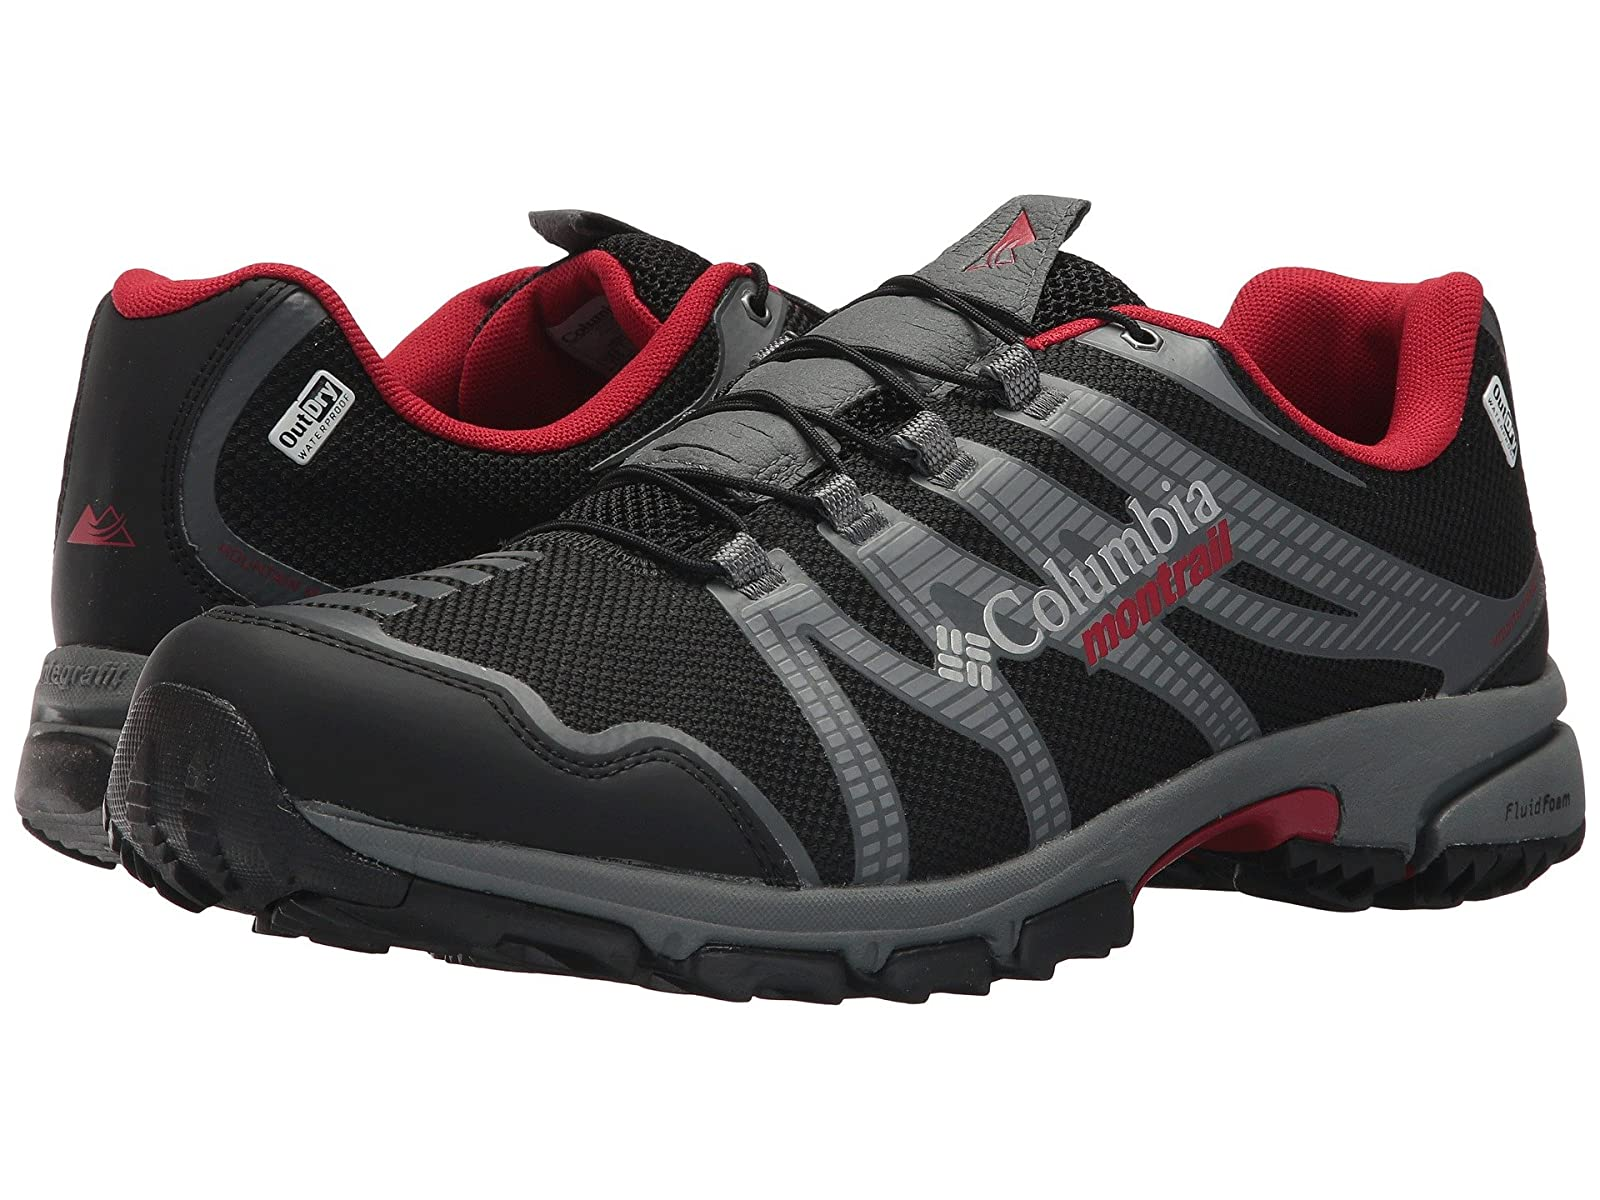 Columbia Mountain Masochist IV OutdryAtmospheric grades have affordable shoes